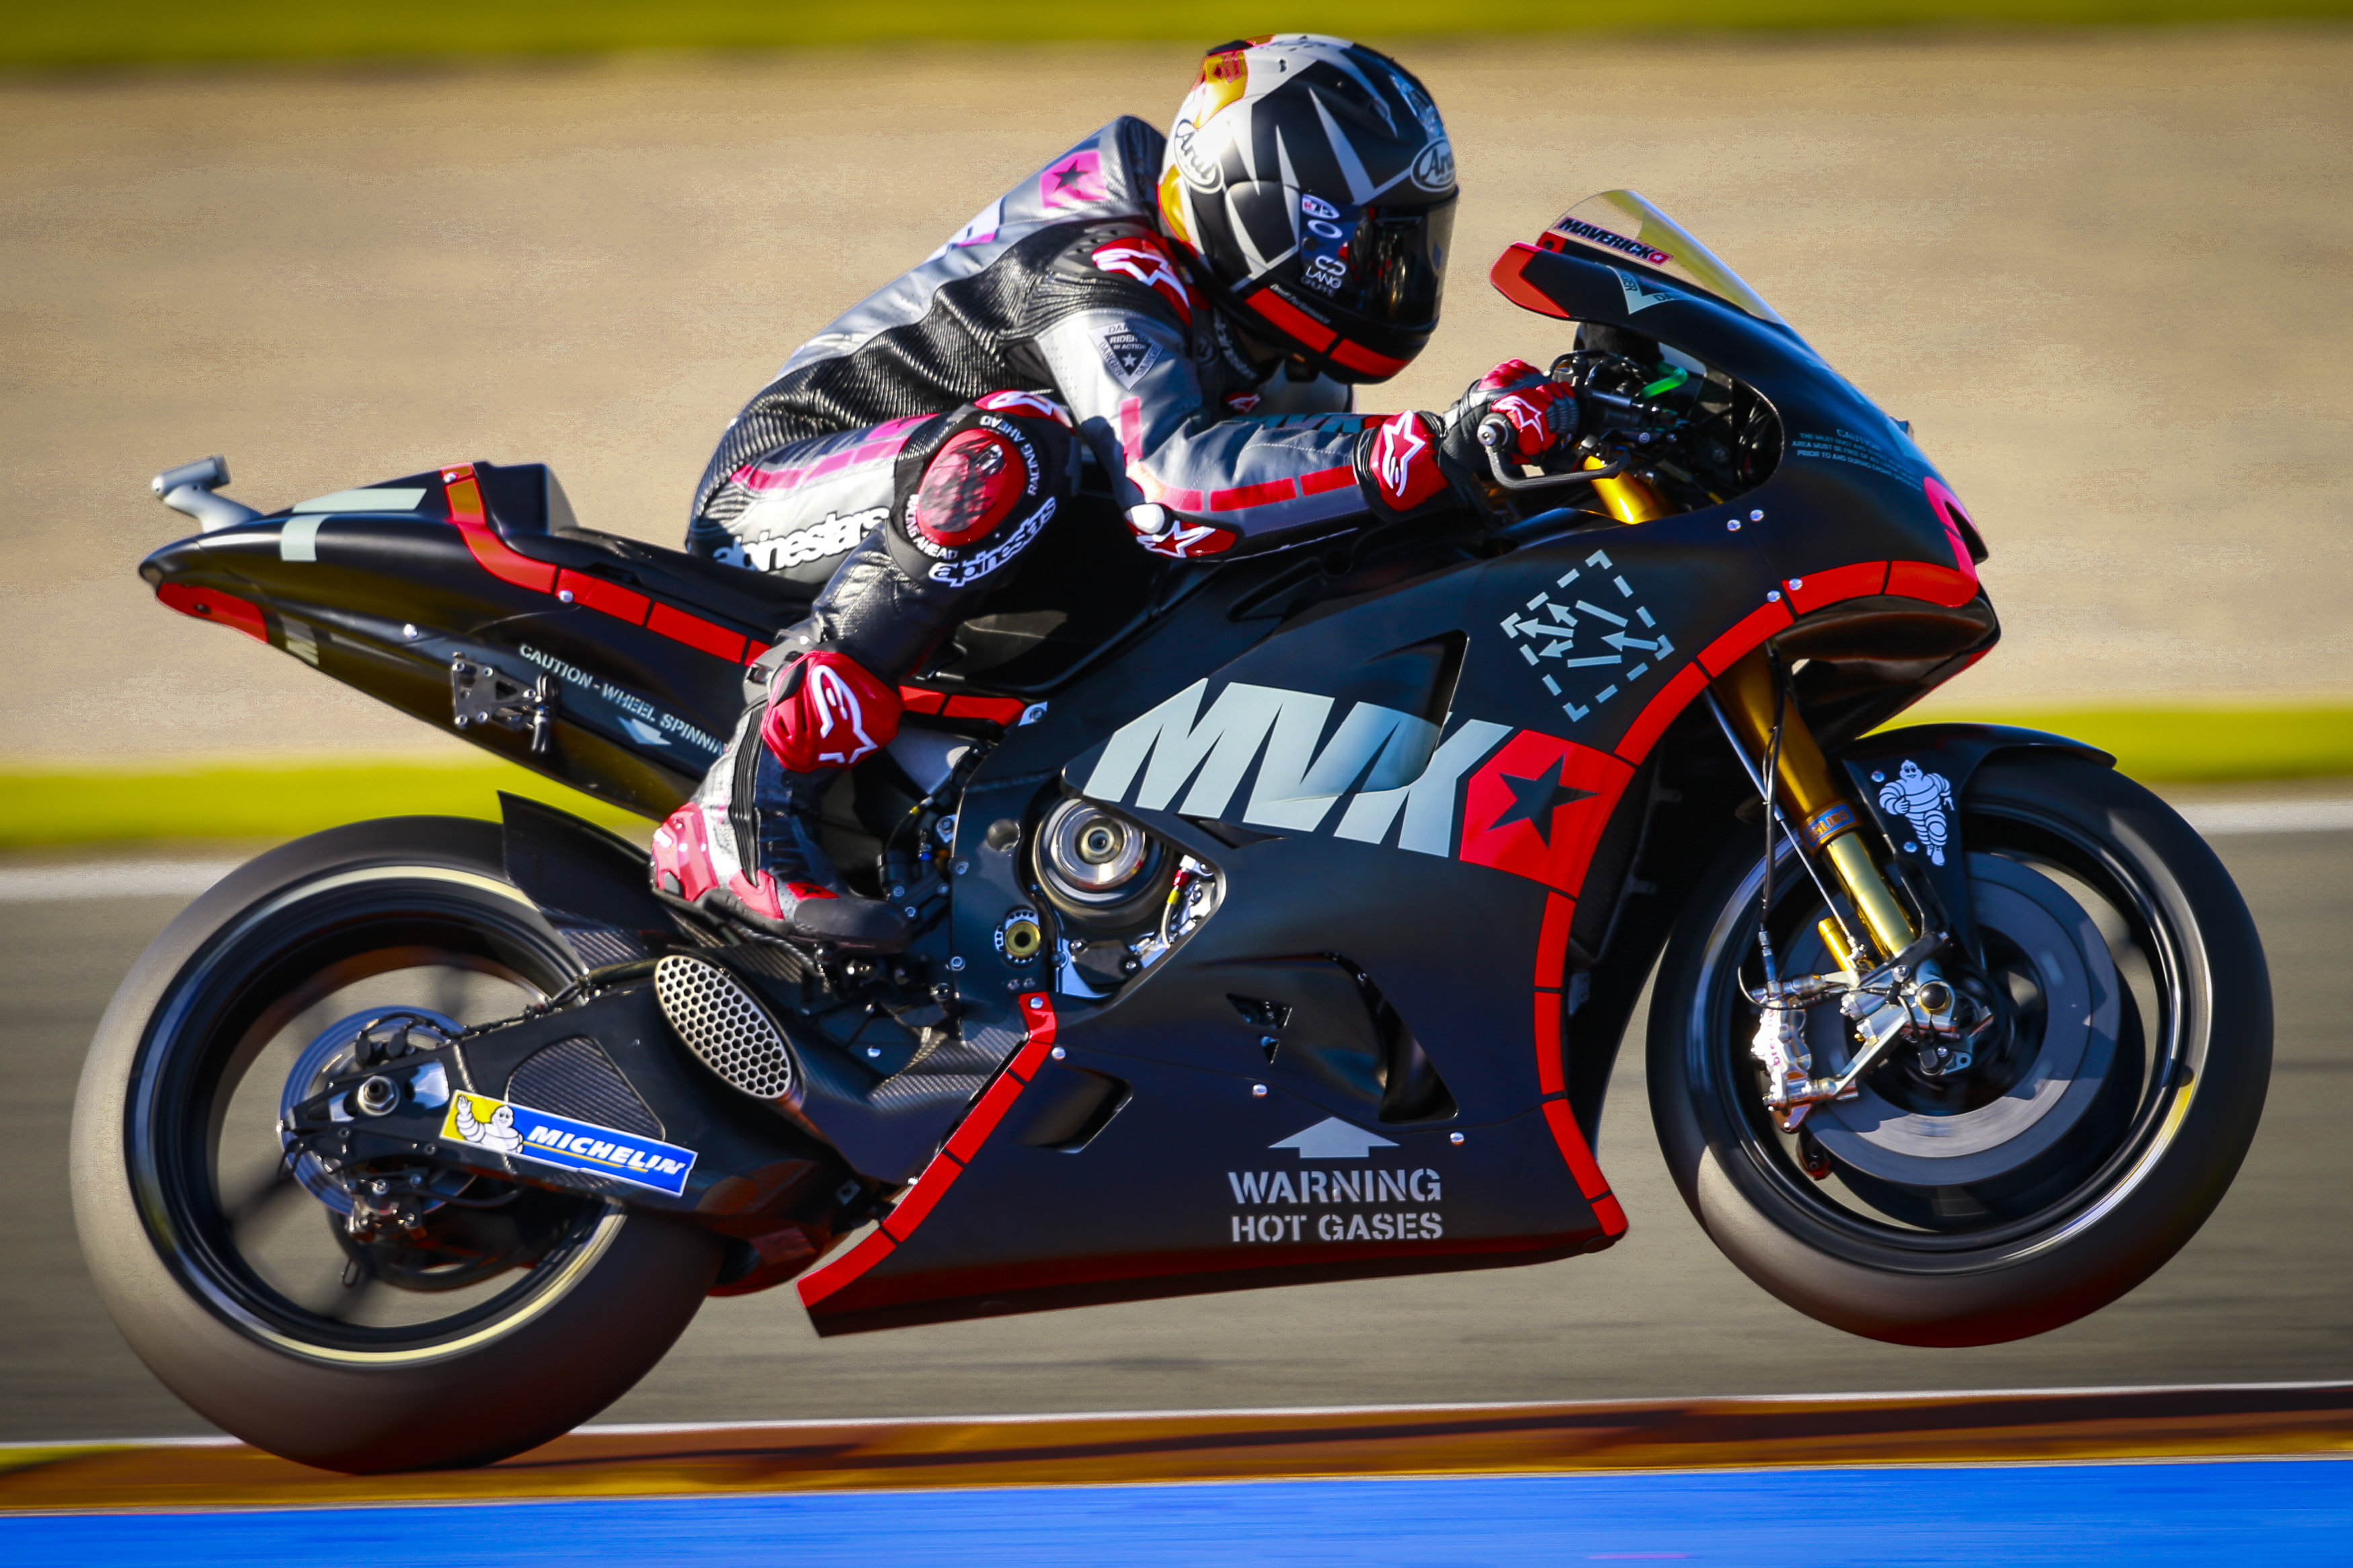 i-Moto | NEW KIDS ON THE BLOCK DOMINATES FIRST DAY VALENCIA TEST